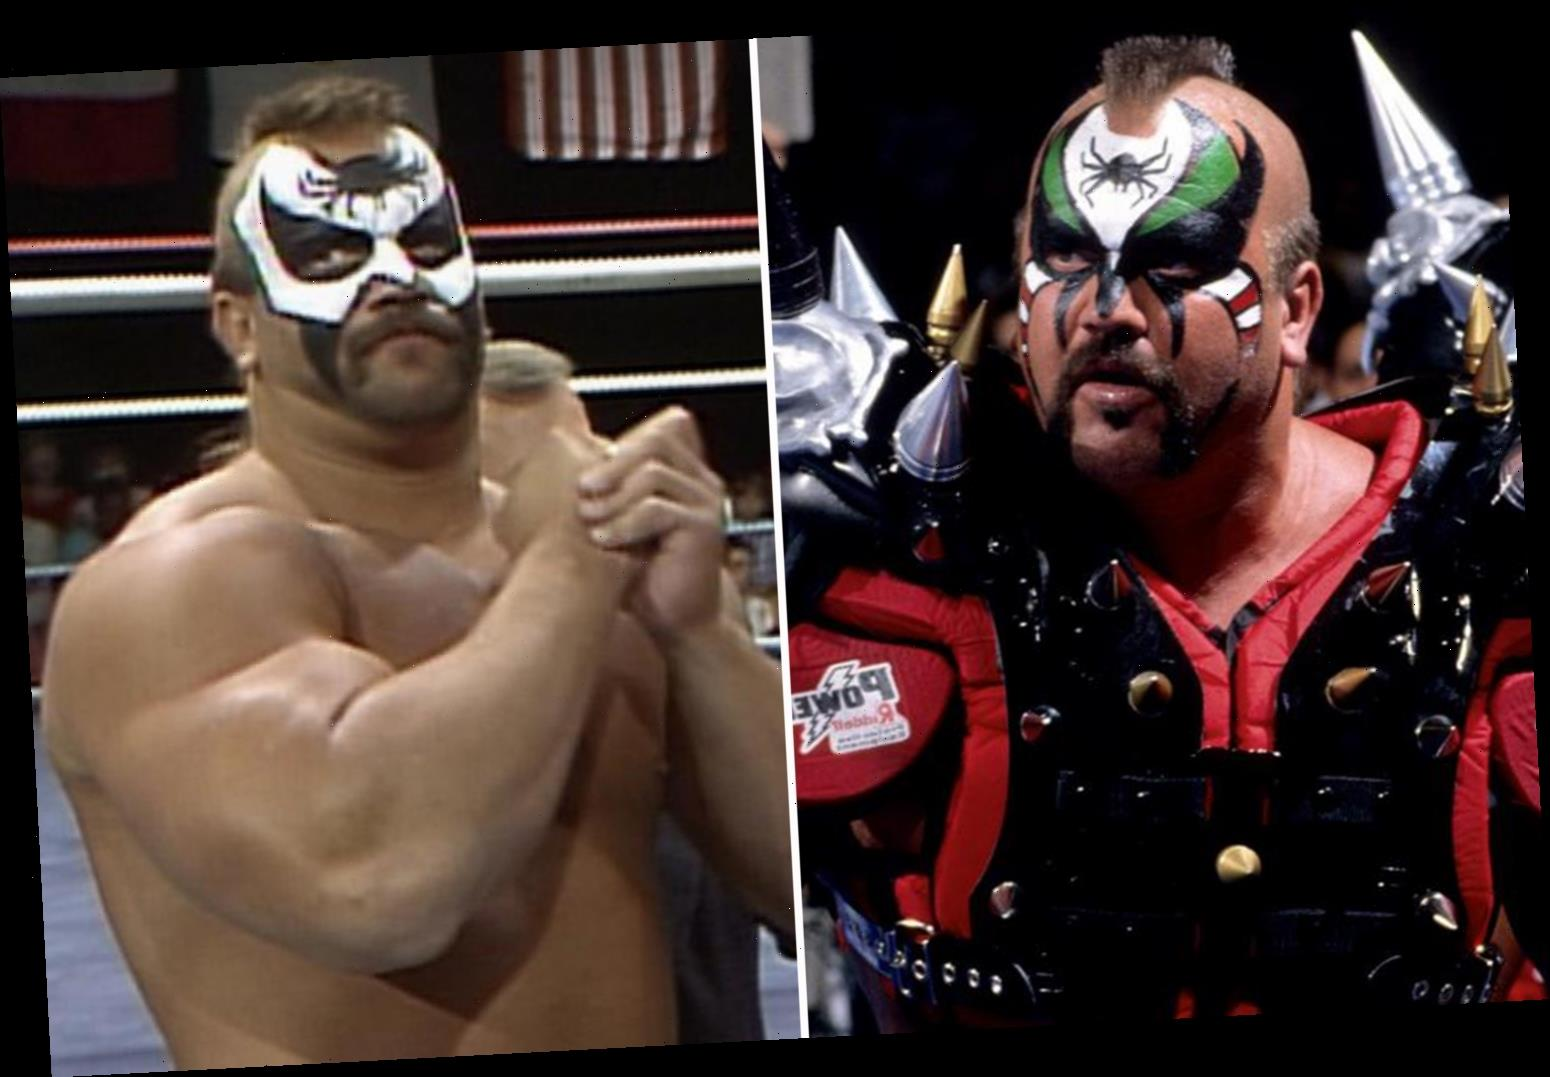 Road Warrior Animal dead at 60: WWE legend part of Legion of Doom passes away